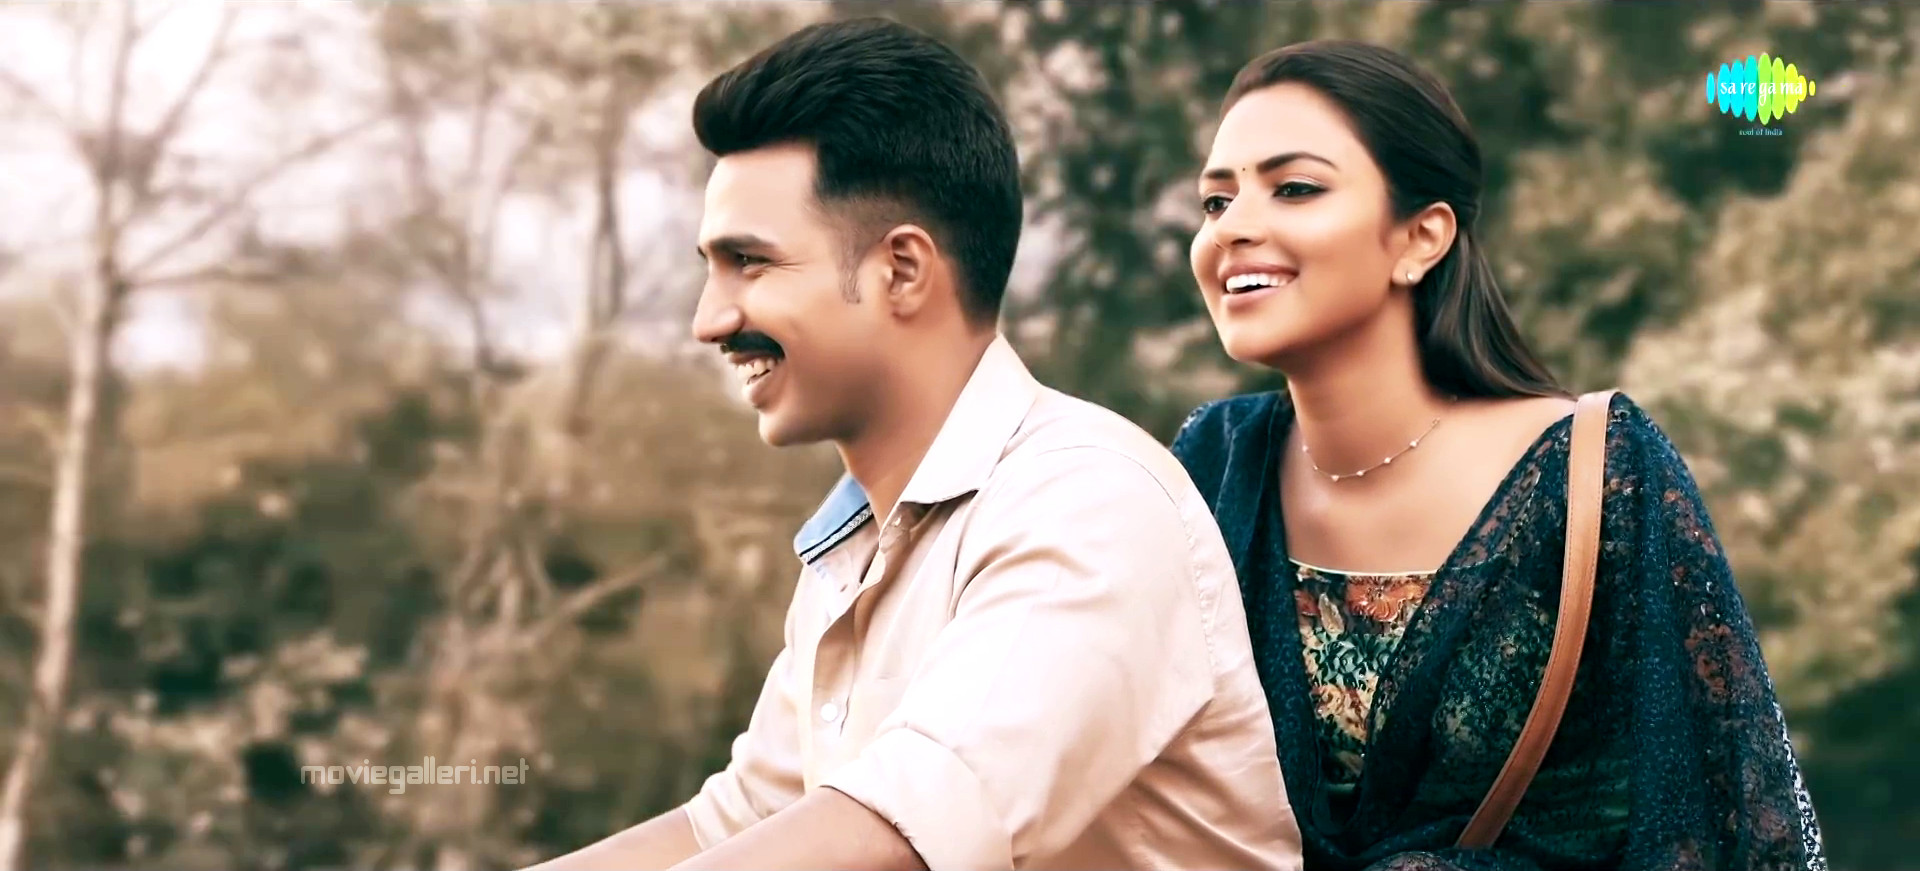 Actor Vishnu Vishal's chemistry with Actress Amala Paul in Ratchasan Movie